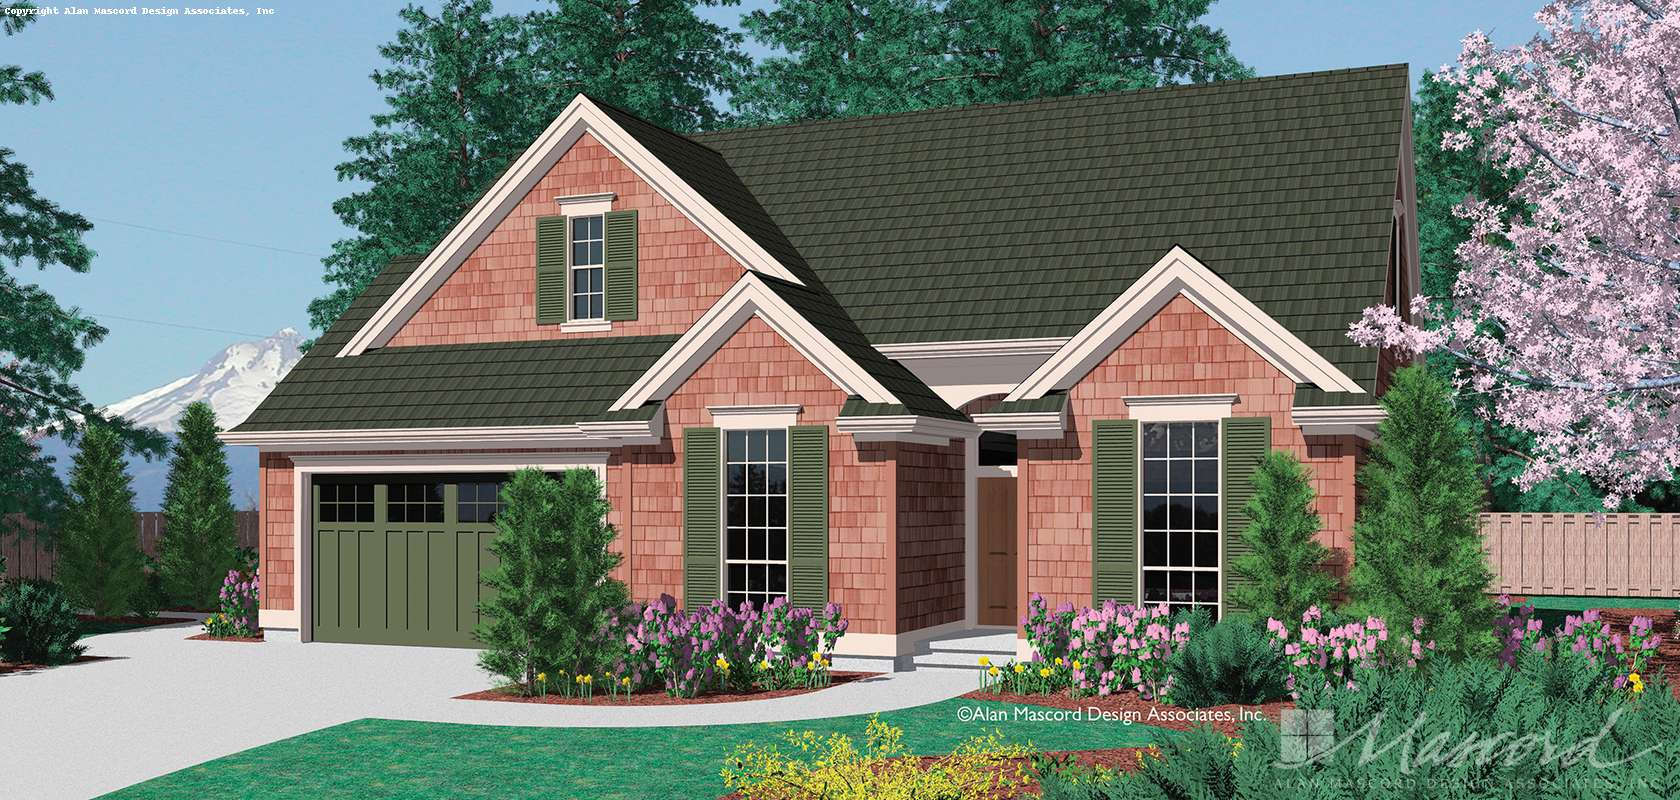 Mascord House Plan B1148: The Glenview